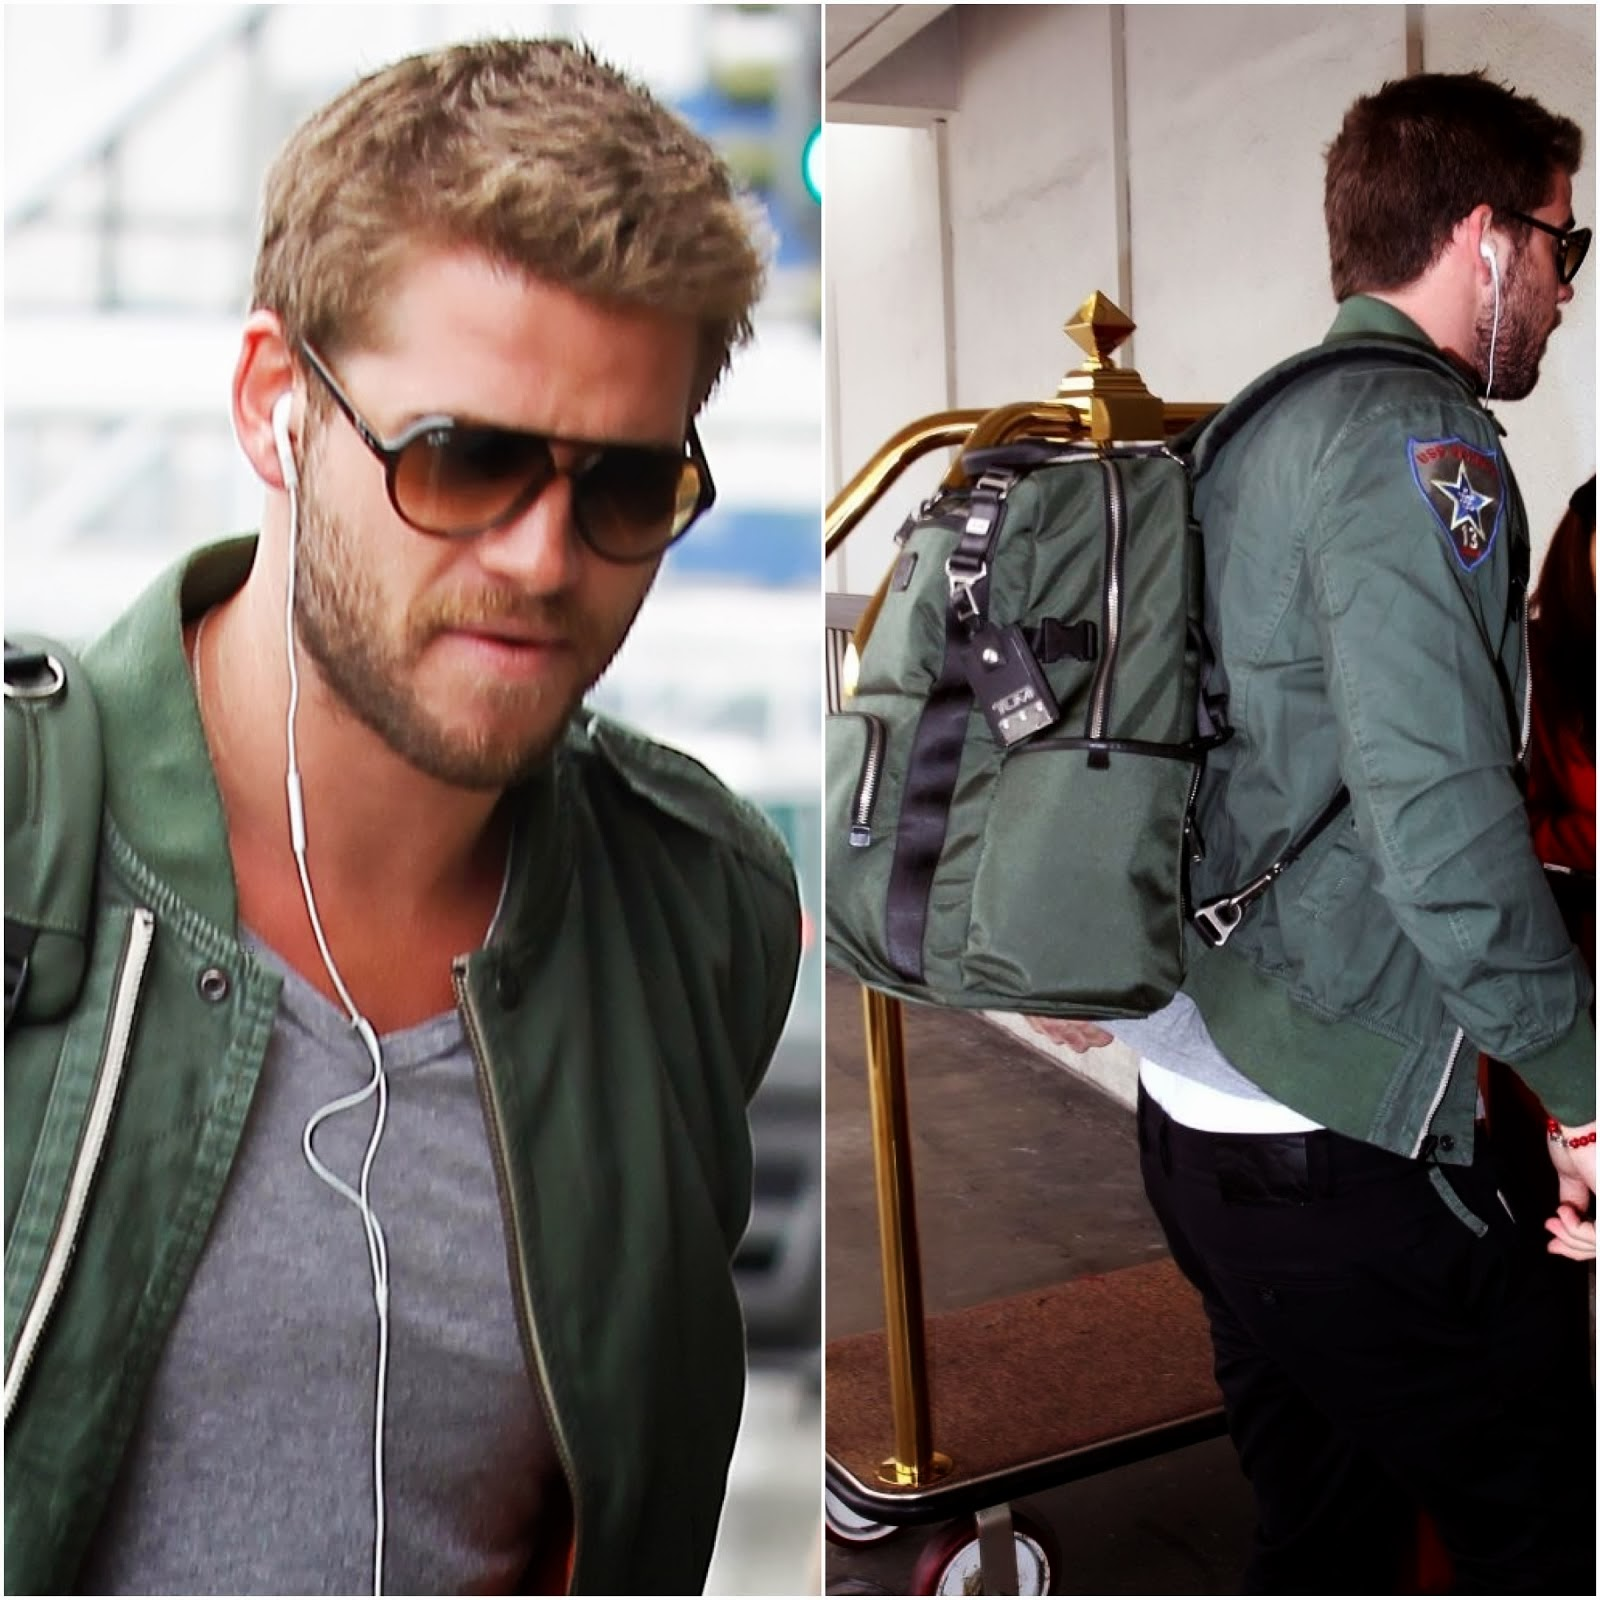 00O00 Menswear Blog: Liam Hemsworth's Tumi Kingsville Deluxe Alpha Bravo backpack / Liam Hemsworth departing on a flight at LAX airport in Los Angeles, California on August 4, 2013.